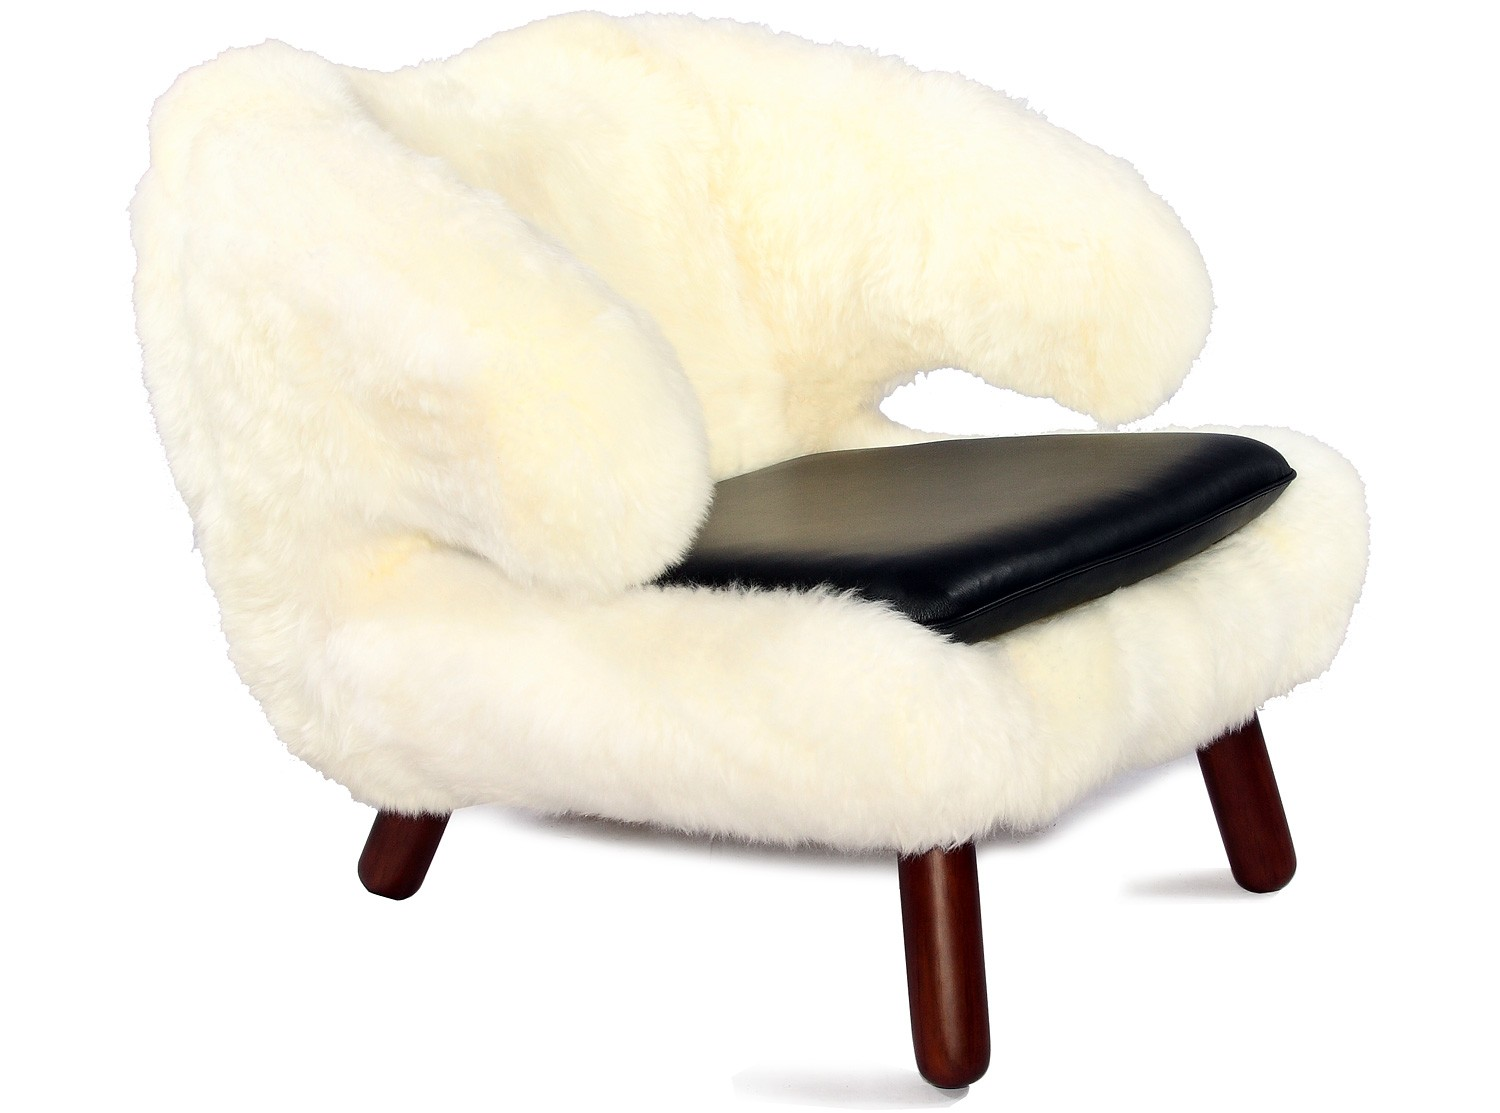 sheepskin chair pad australia rio brands beach chairs uk pelikan in by finn juhl collector replica